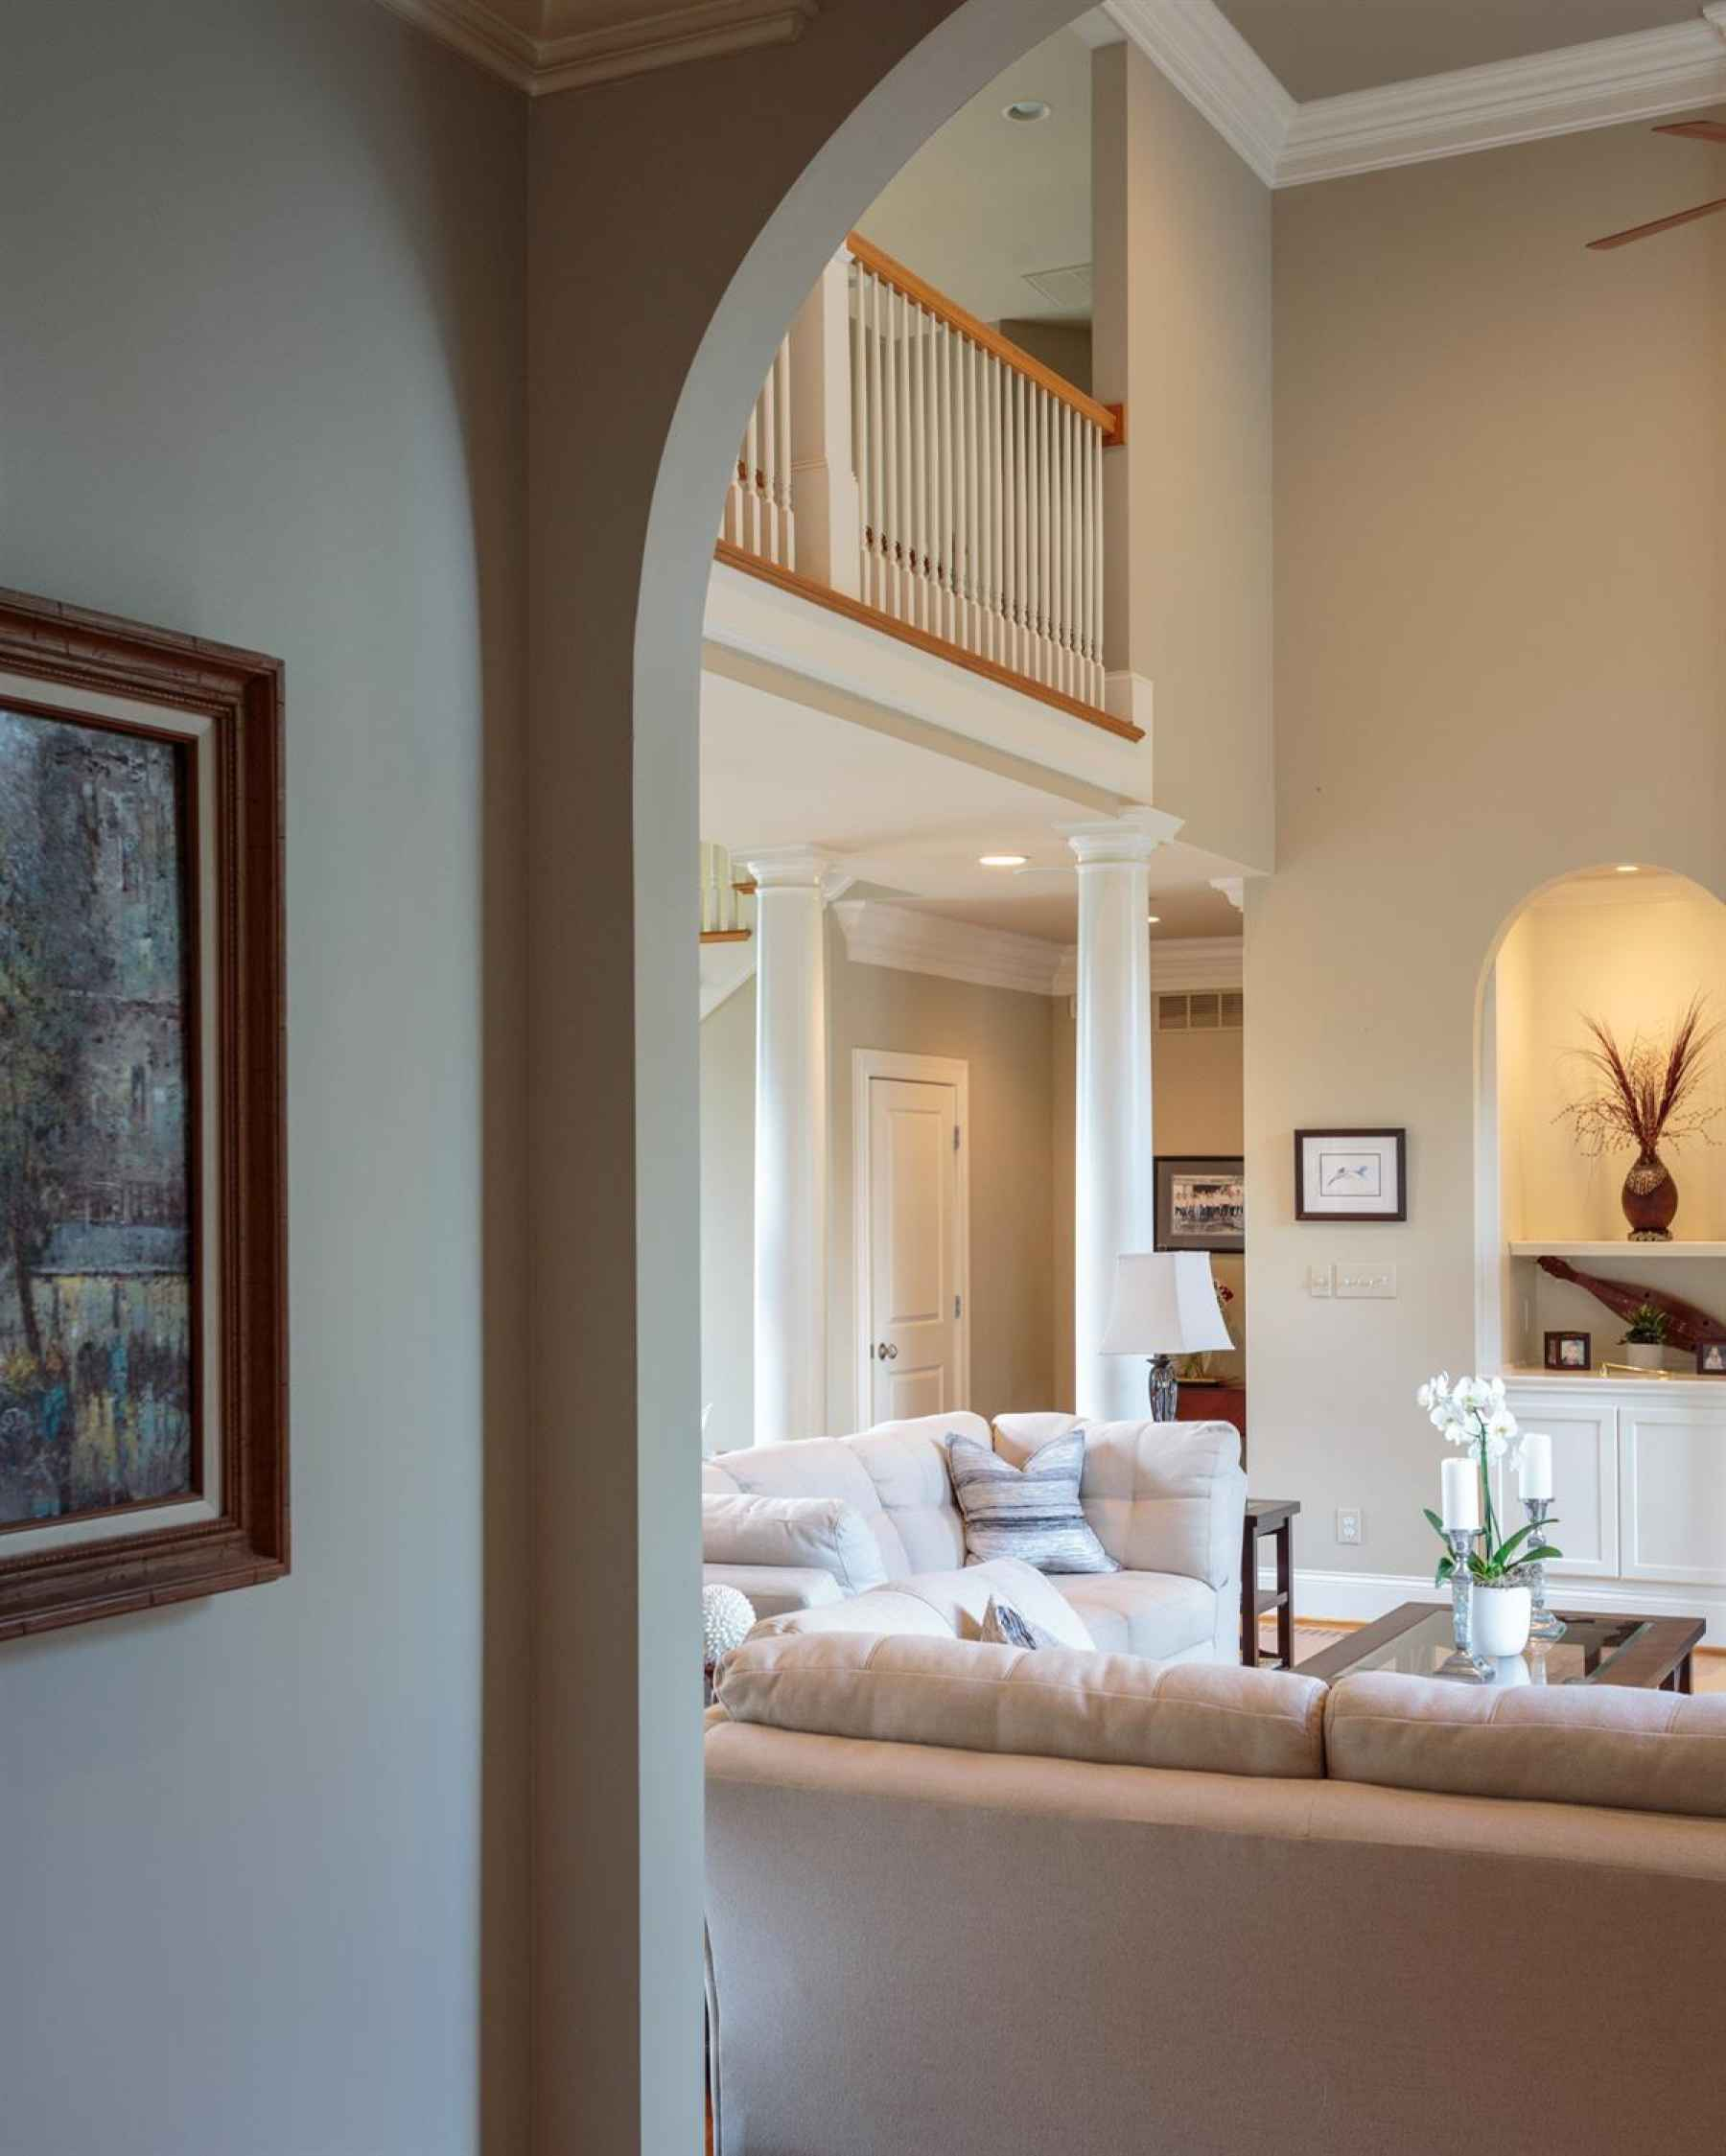 Arched doorways leading from Living Room to the Kitchen, Family Room and Breakfast Area of the home.